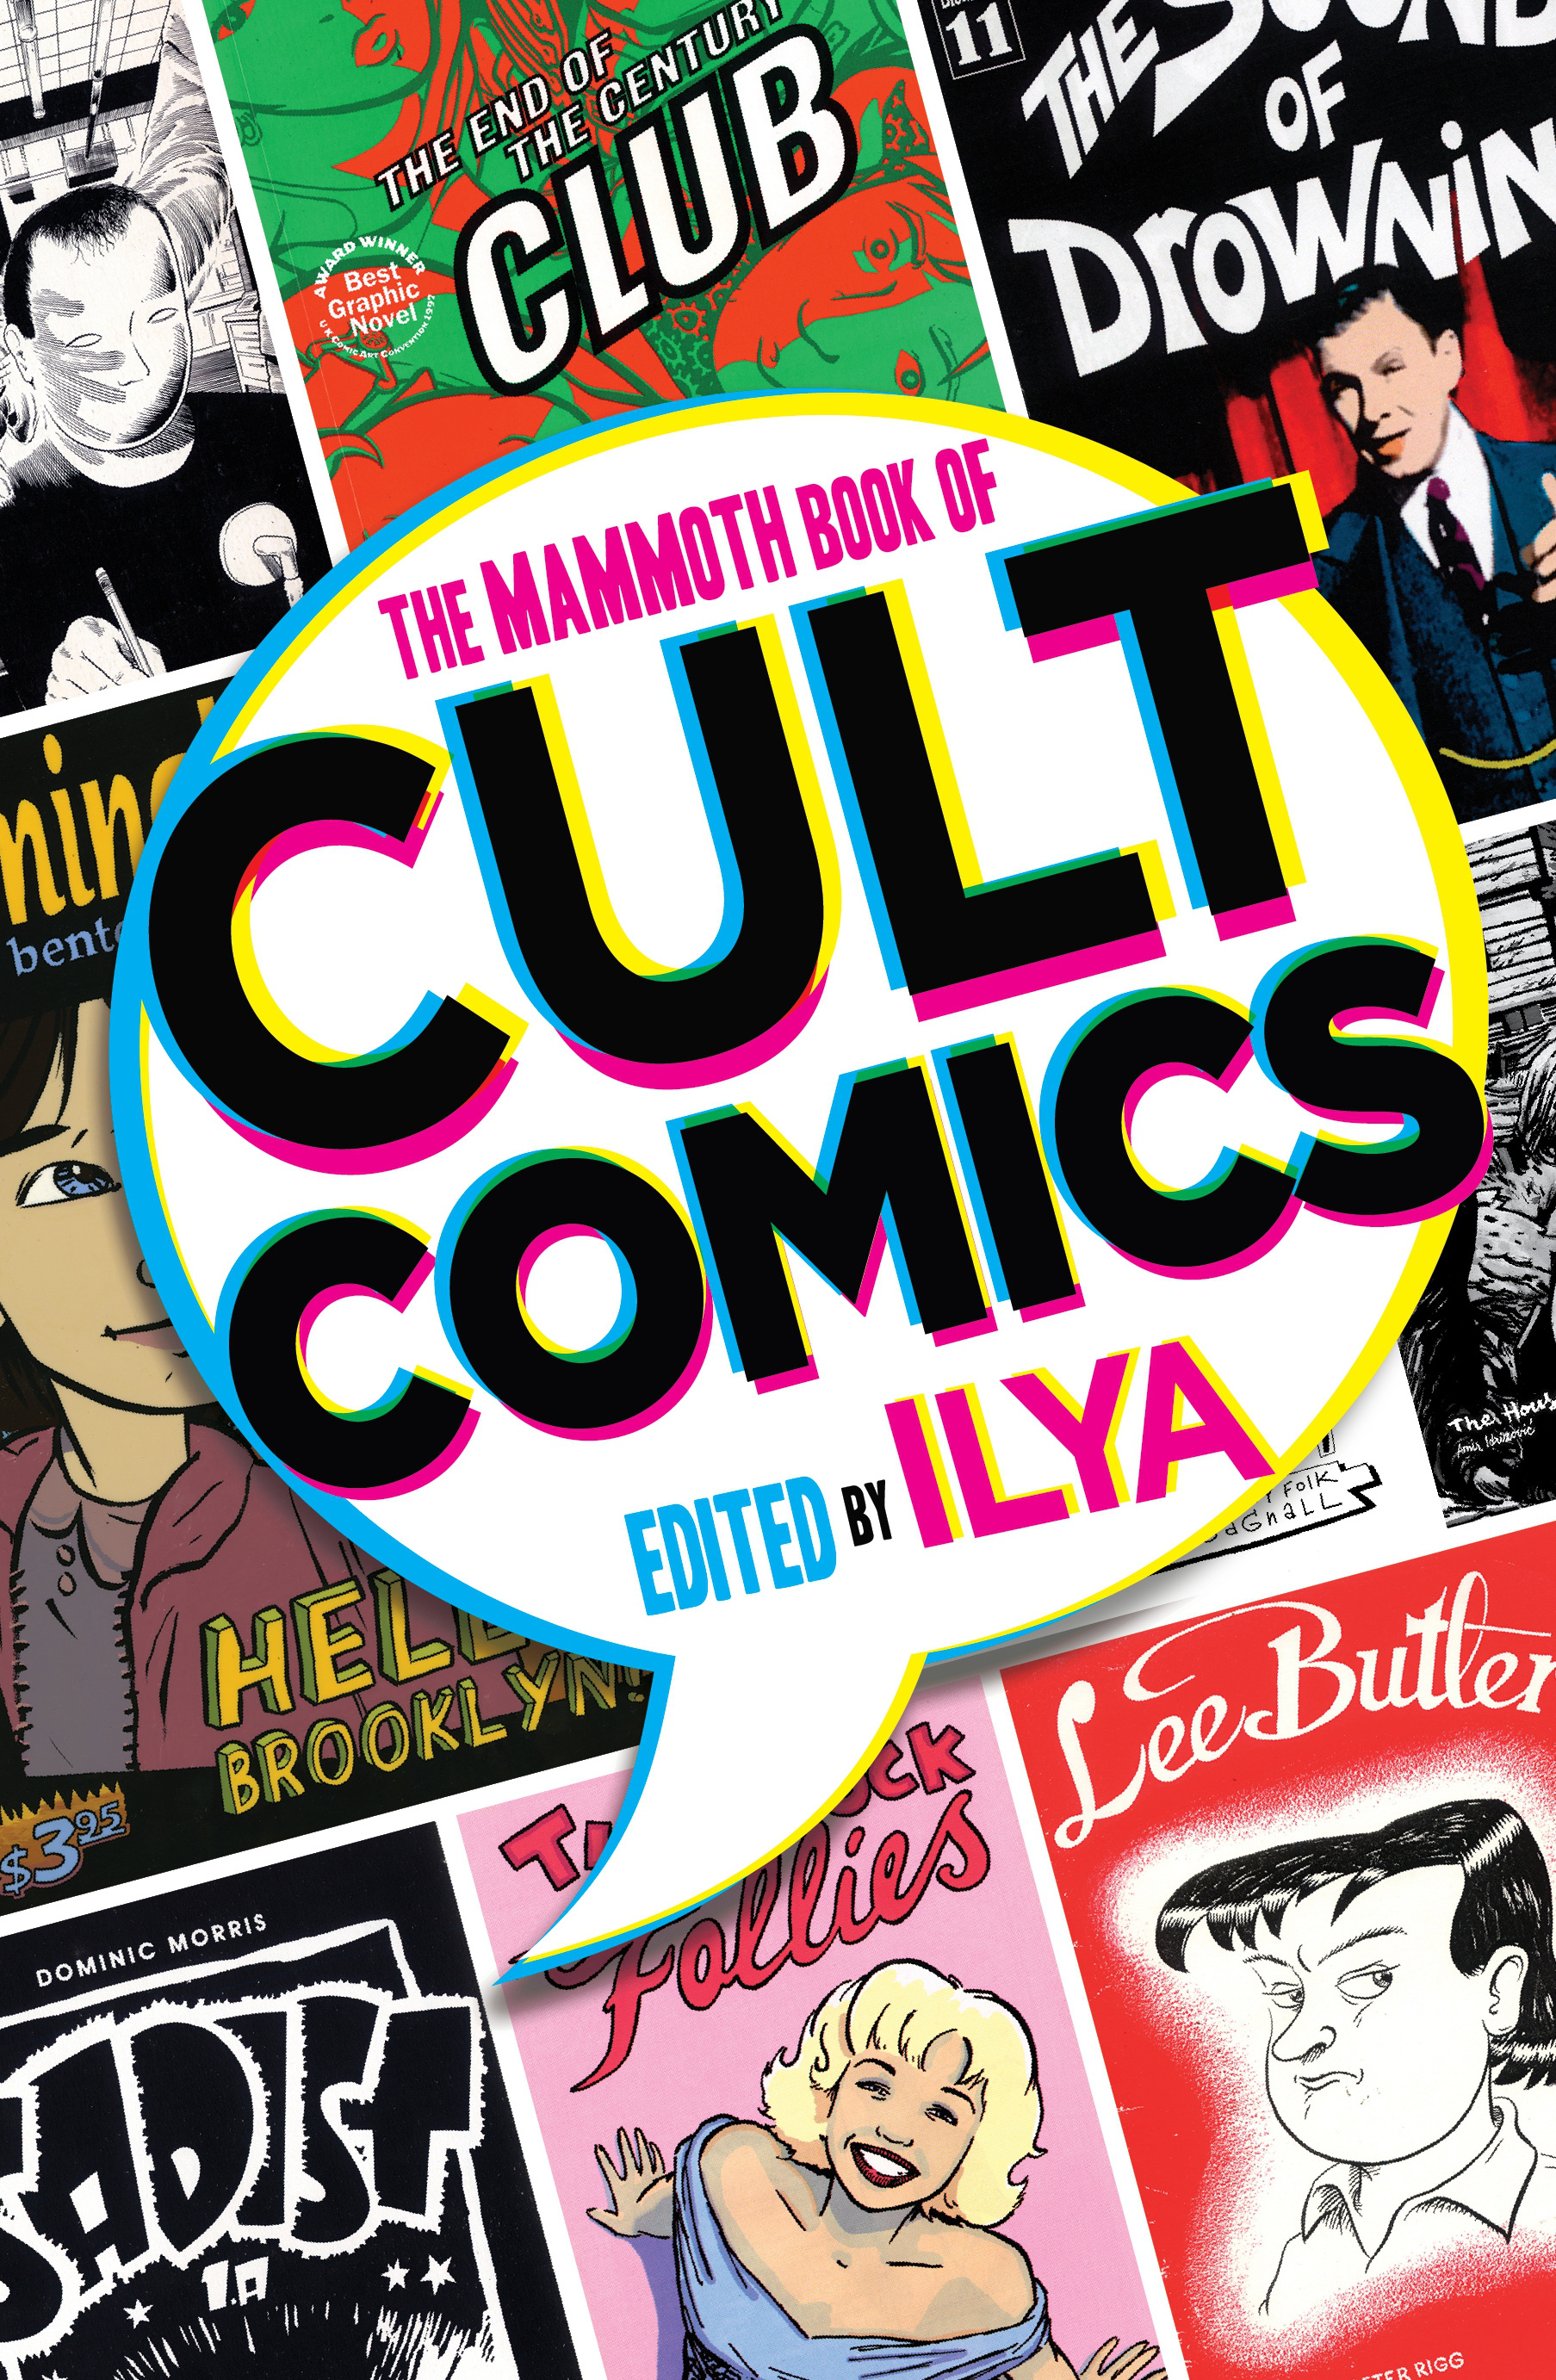 The Mammoth Book Of Cult Comics Lost Classics From Underground Independent Comic Strip Art By ILYA